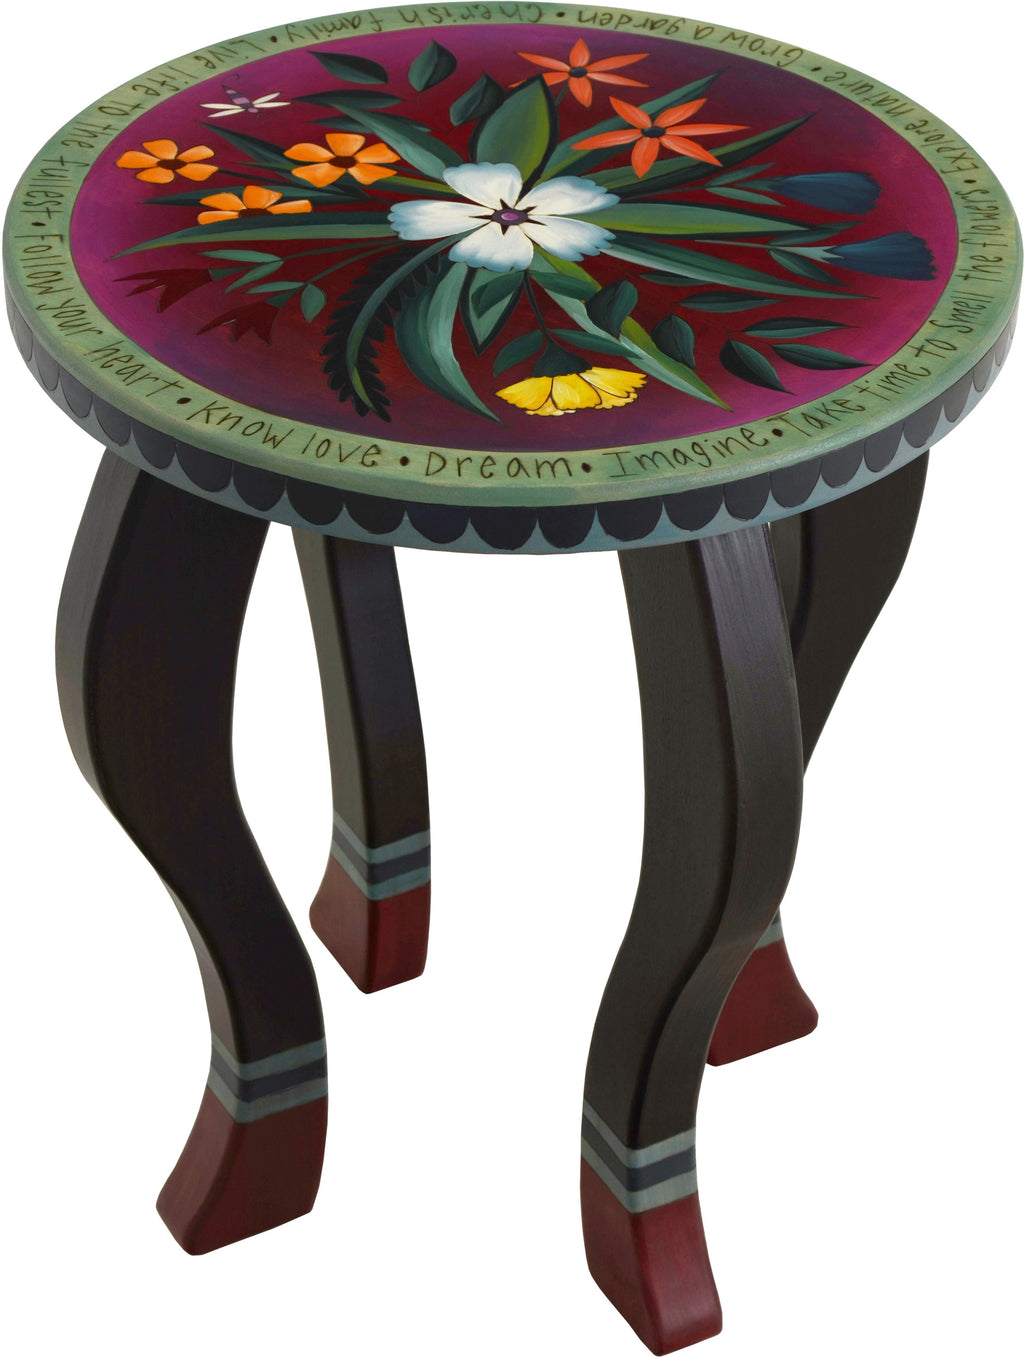 Round End Table –  Handsome end table with rich hues and floral motifs